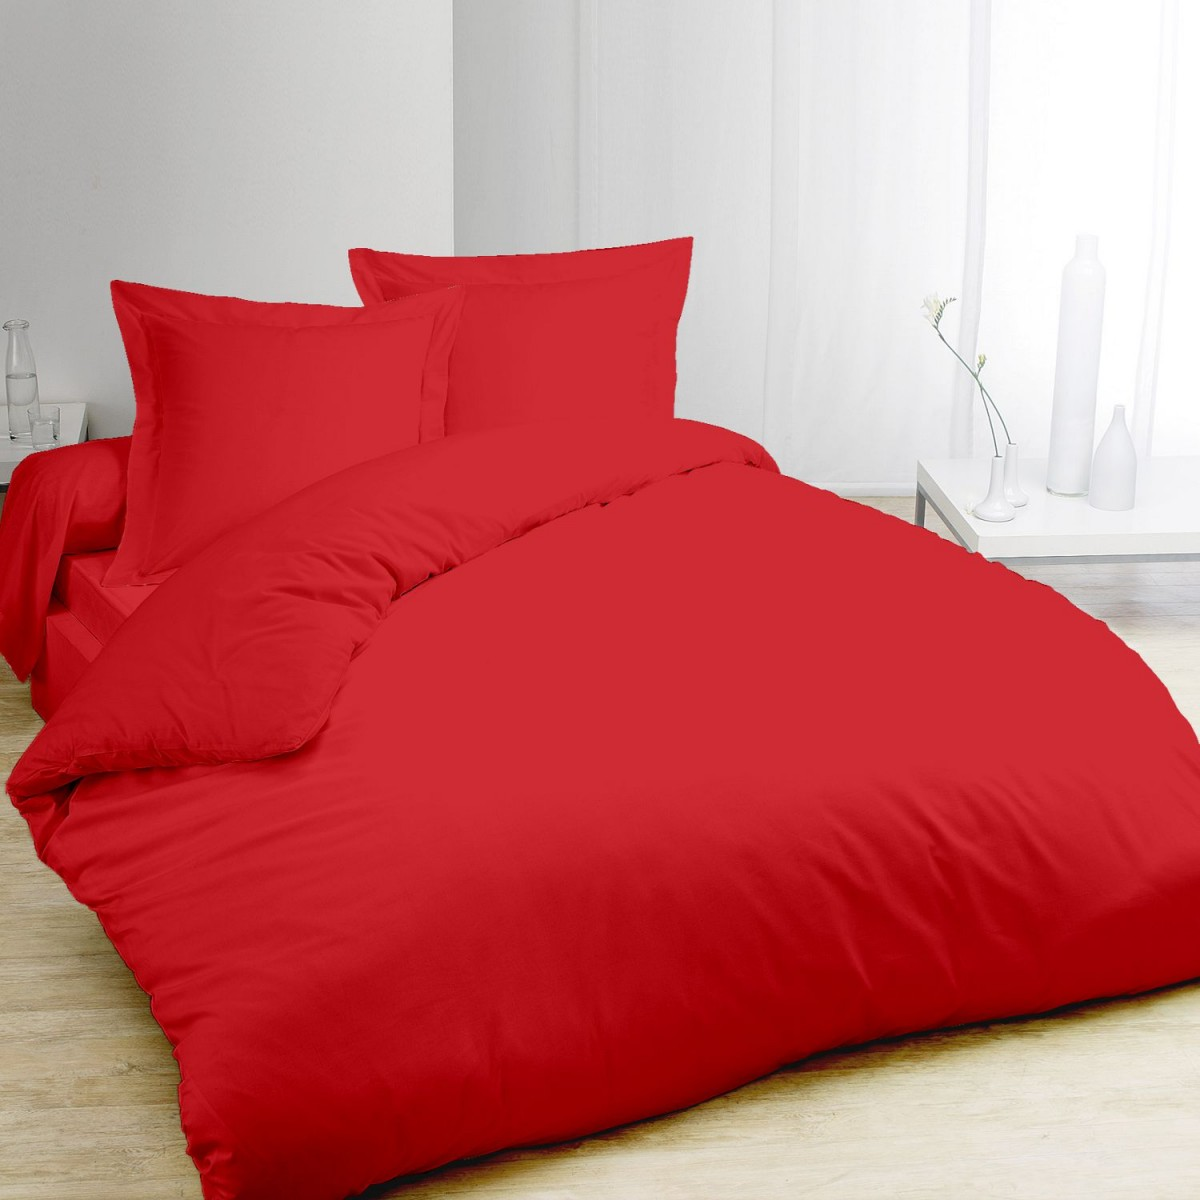 Housse Couette Rouge